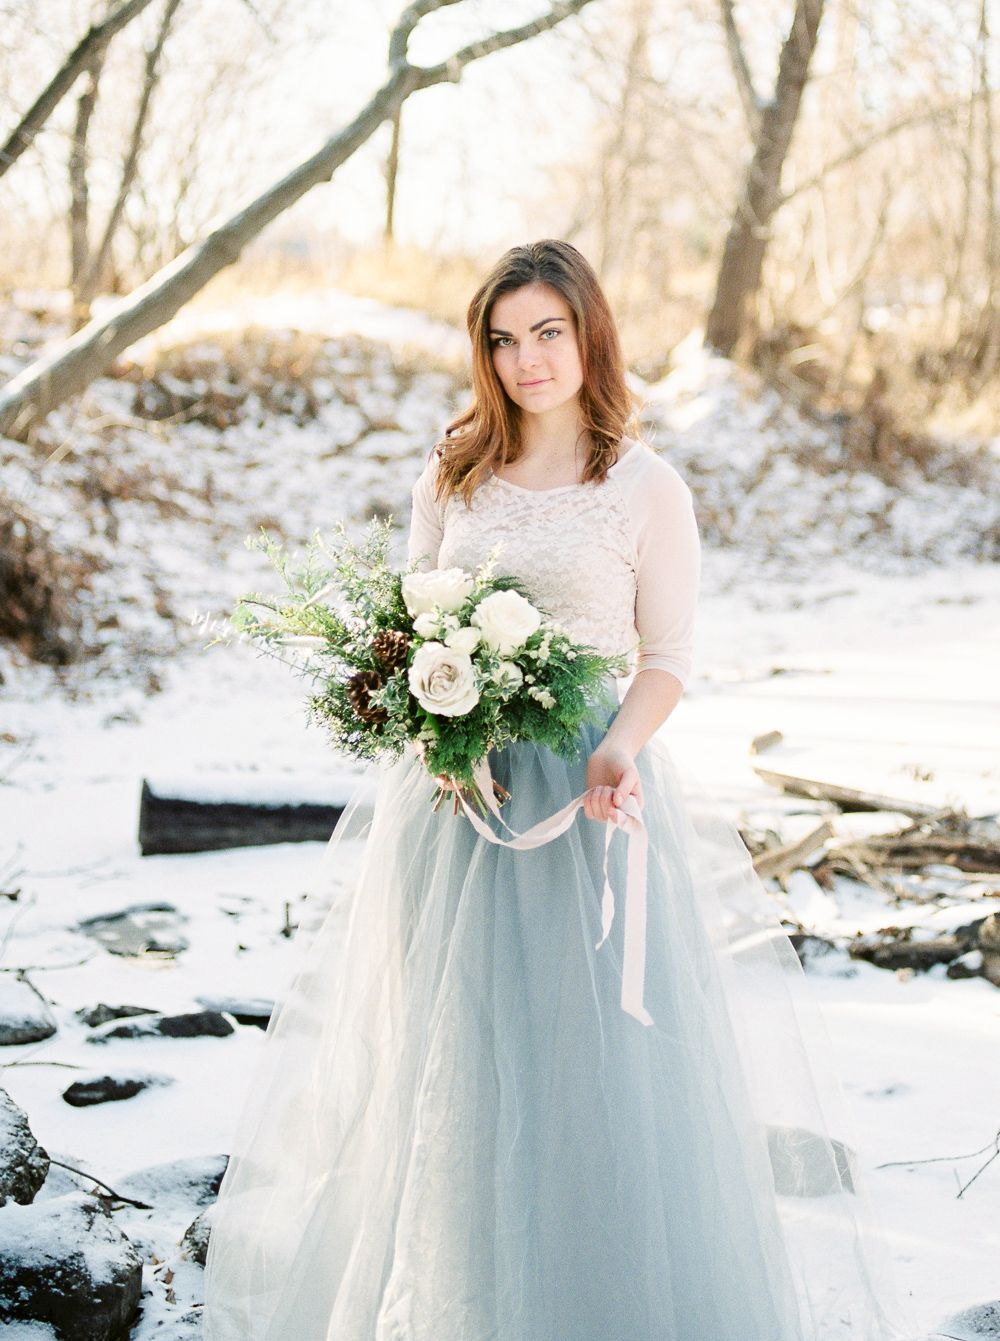 Canadian Winter Bridal Inspiration